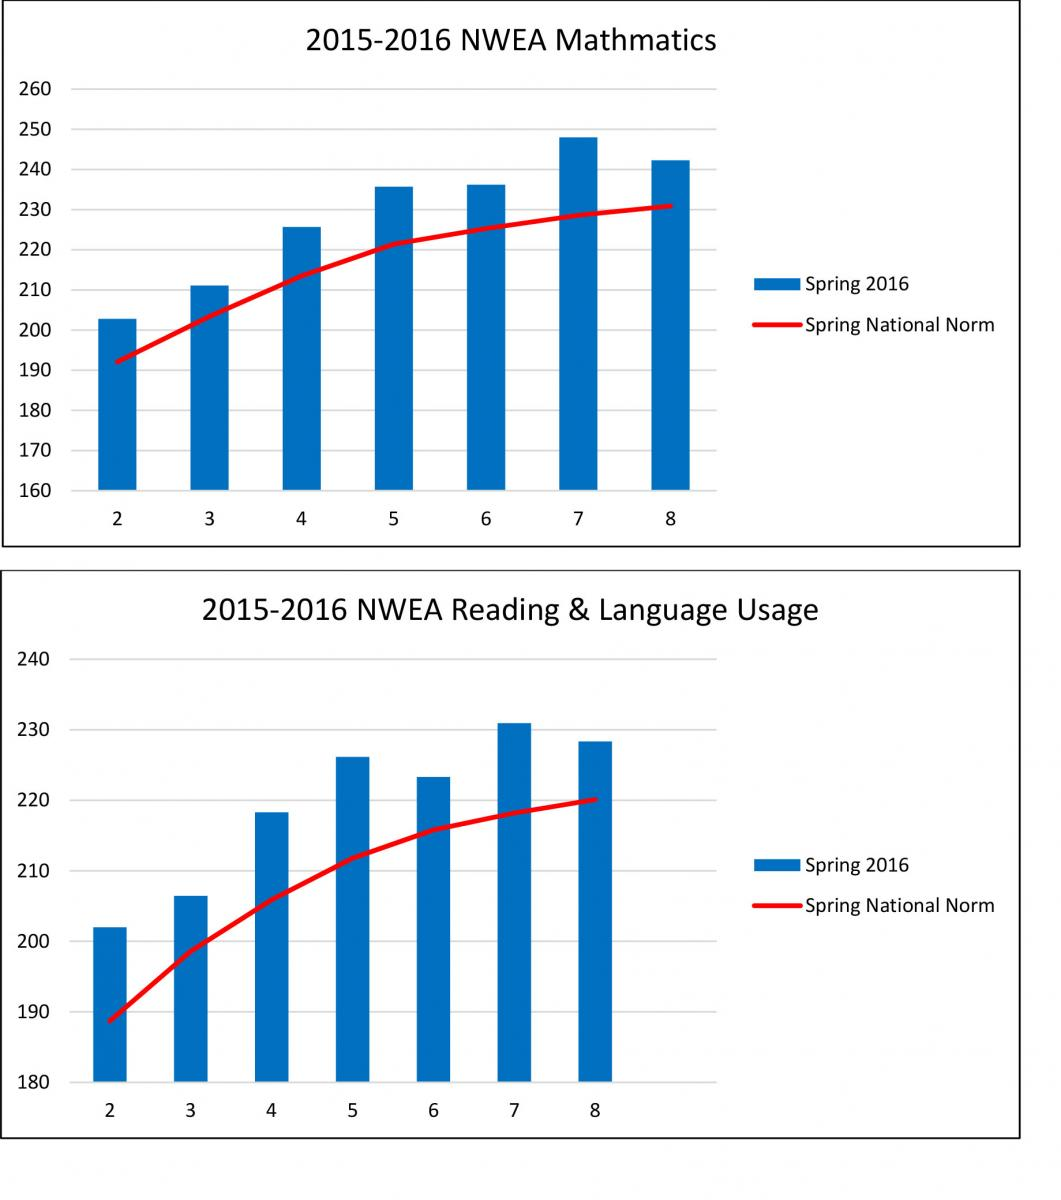 NWEA Testing results for 2016